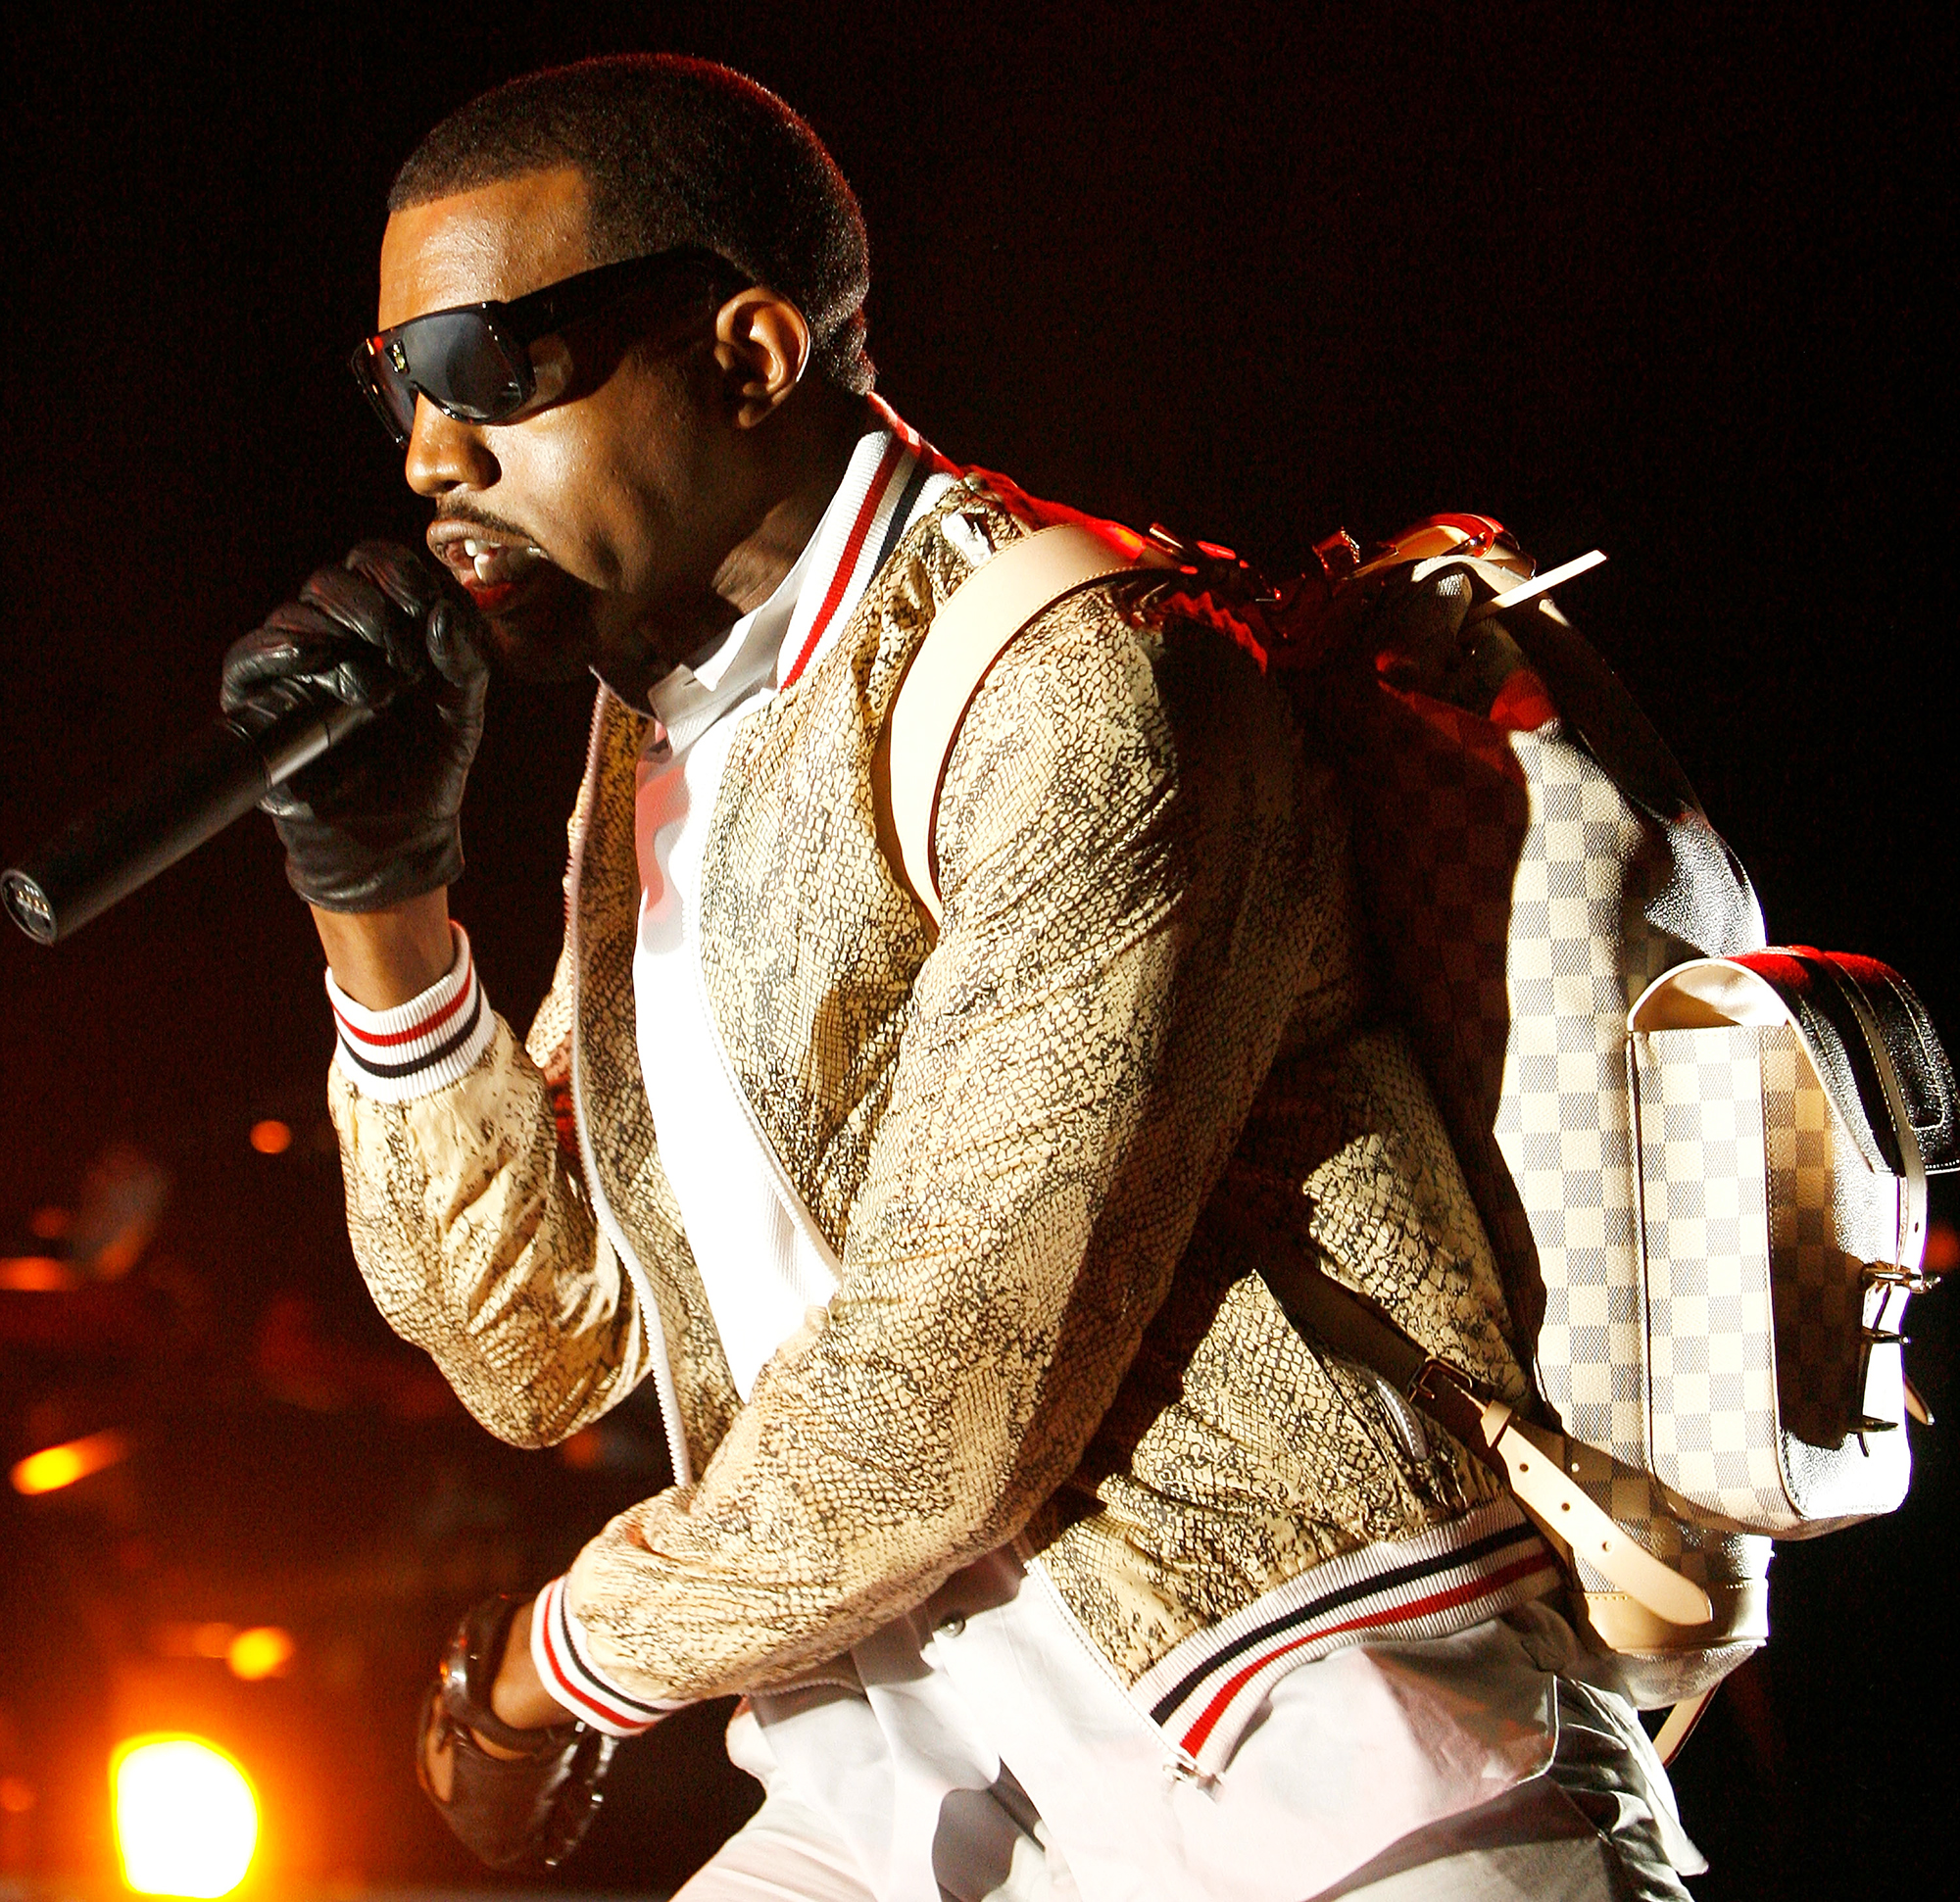 Kanye West wears a custom Louis Vuitton backpack, while performing in New Orleans, on July 4, 2008.